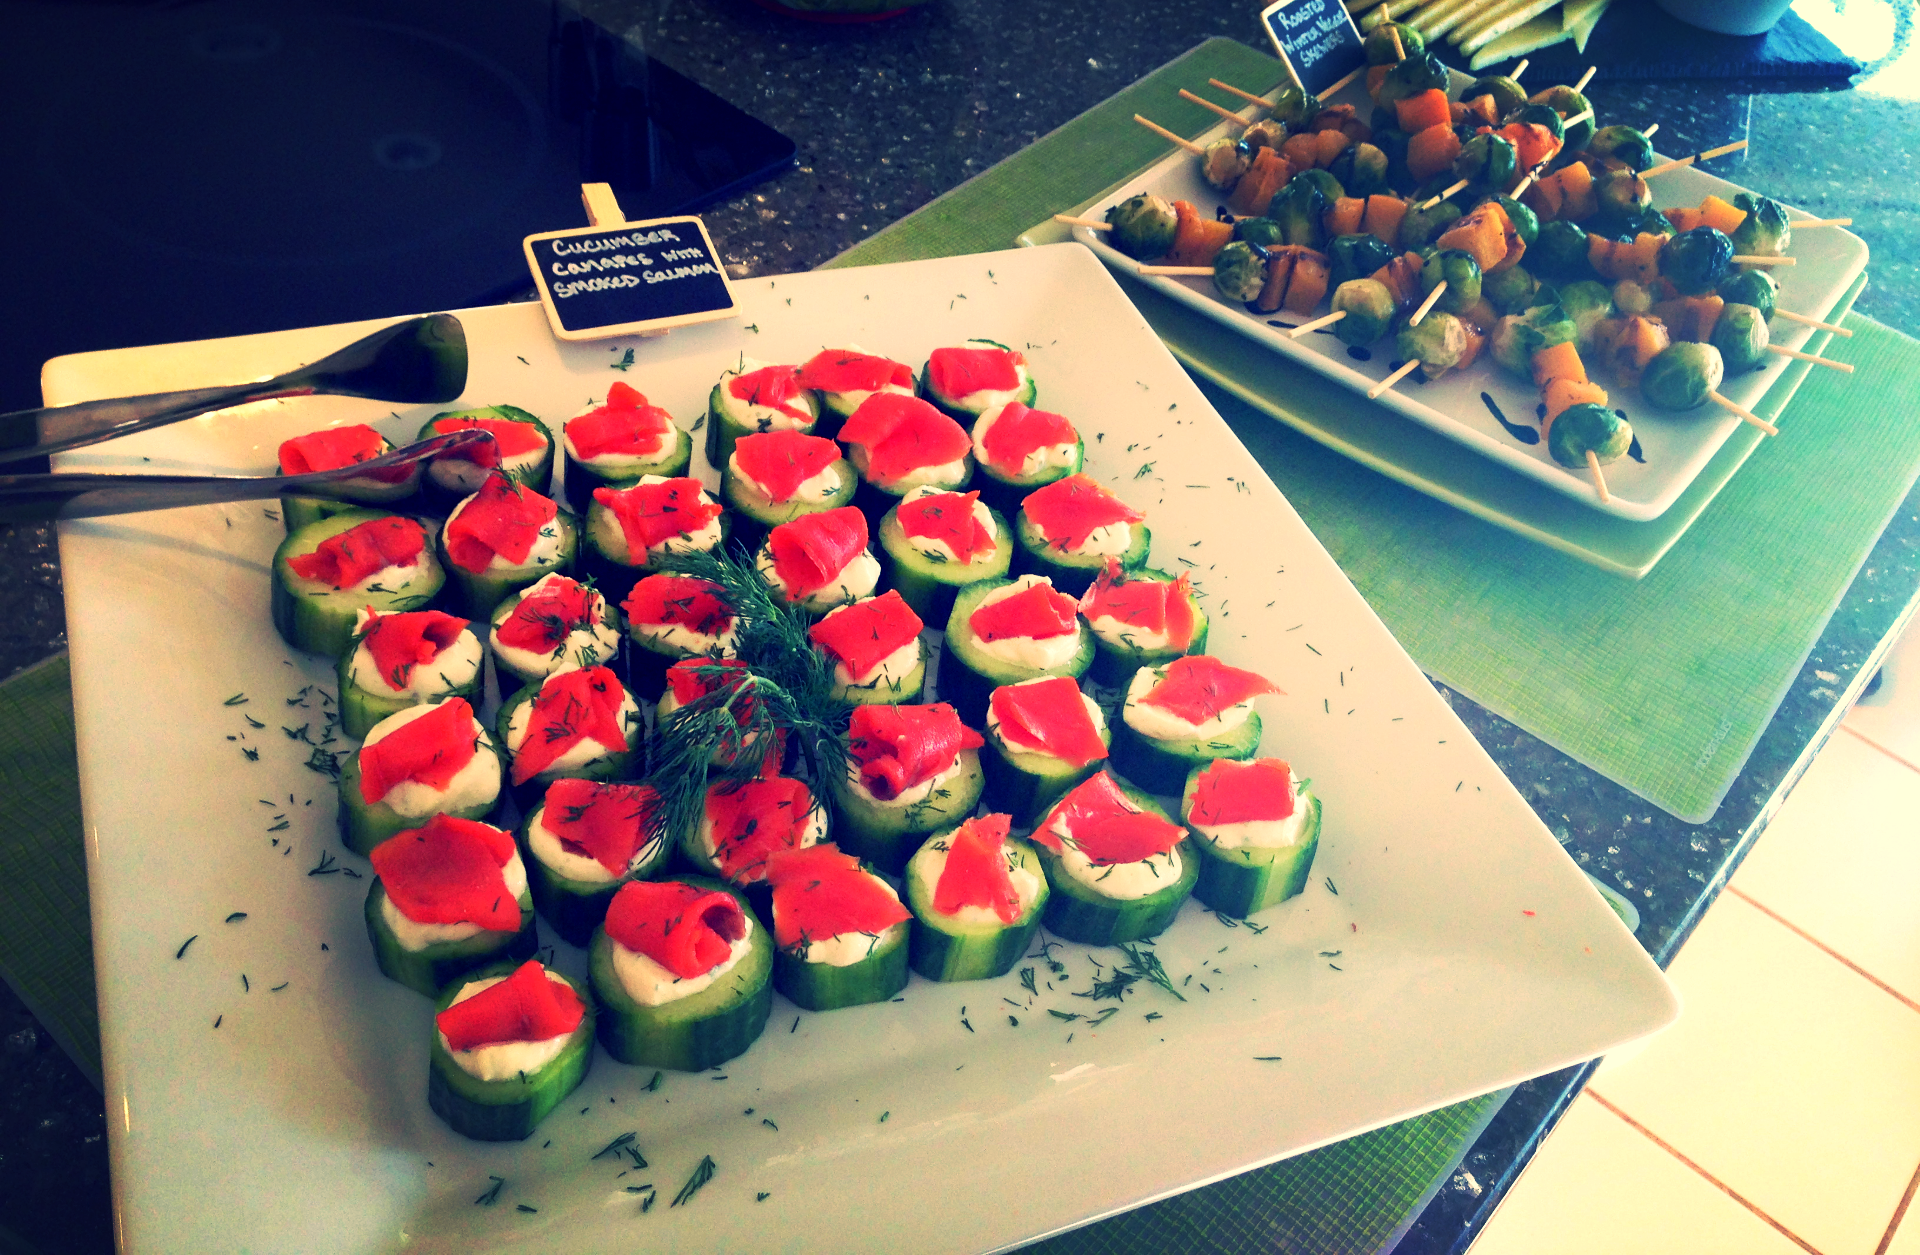 Cucumber Canapes with a Greek Yogurt Goat Cheese Filling and Smoked Salmon